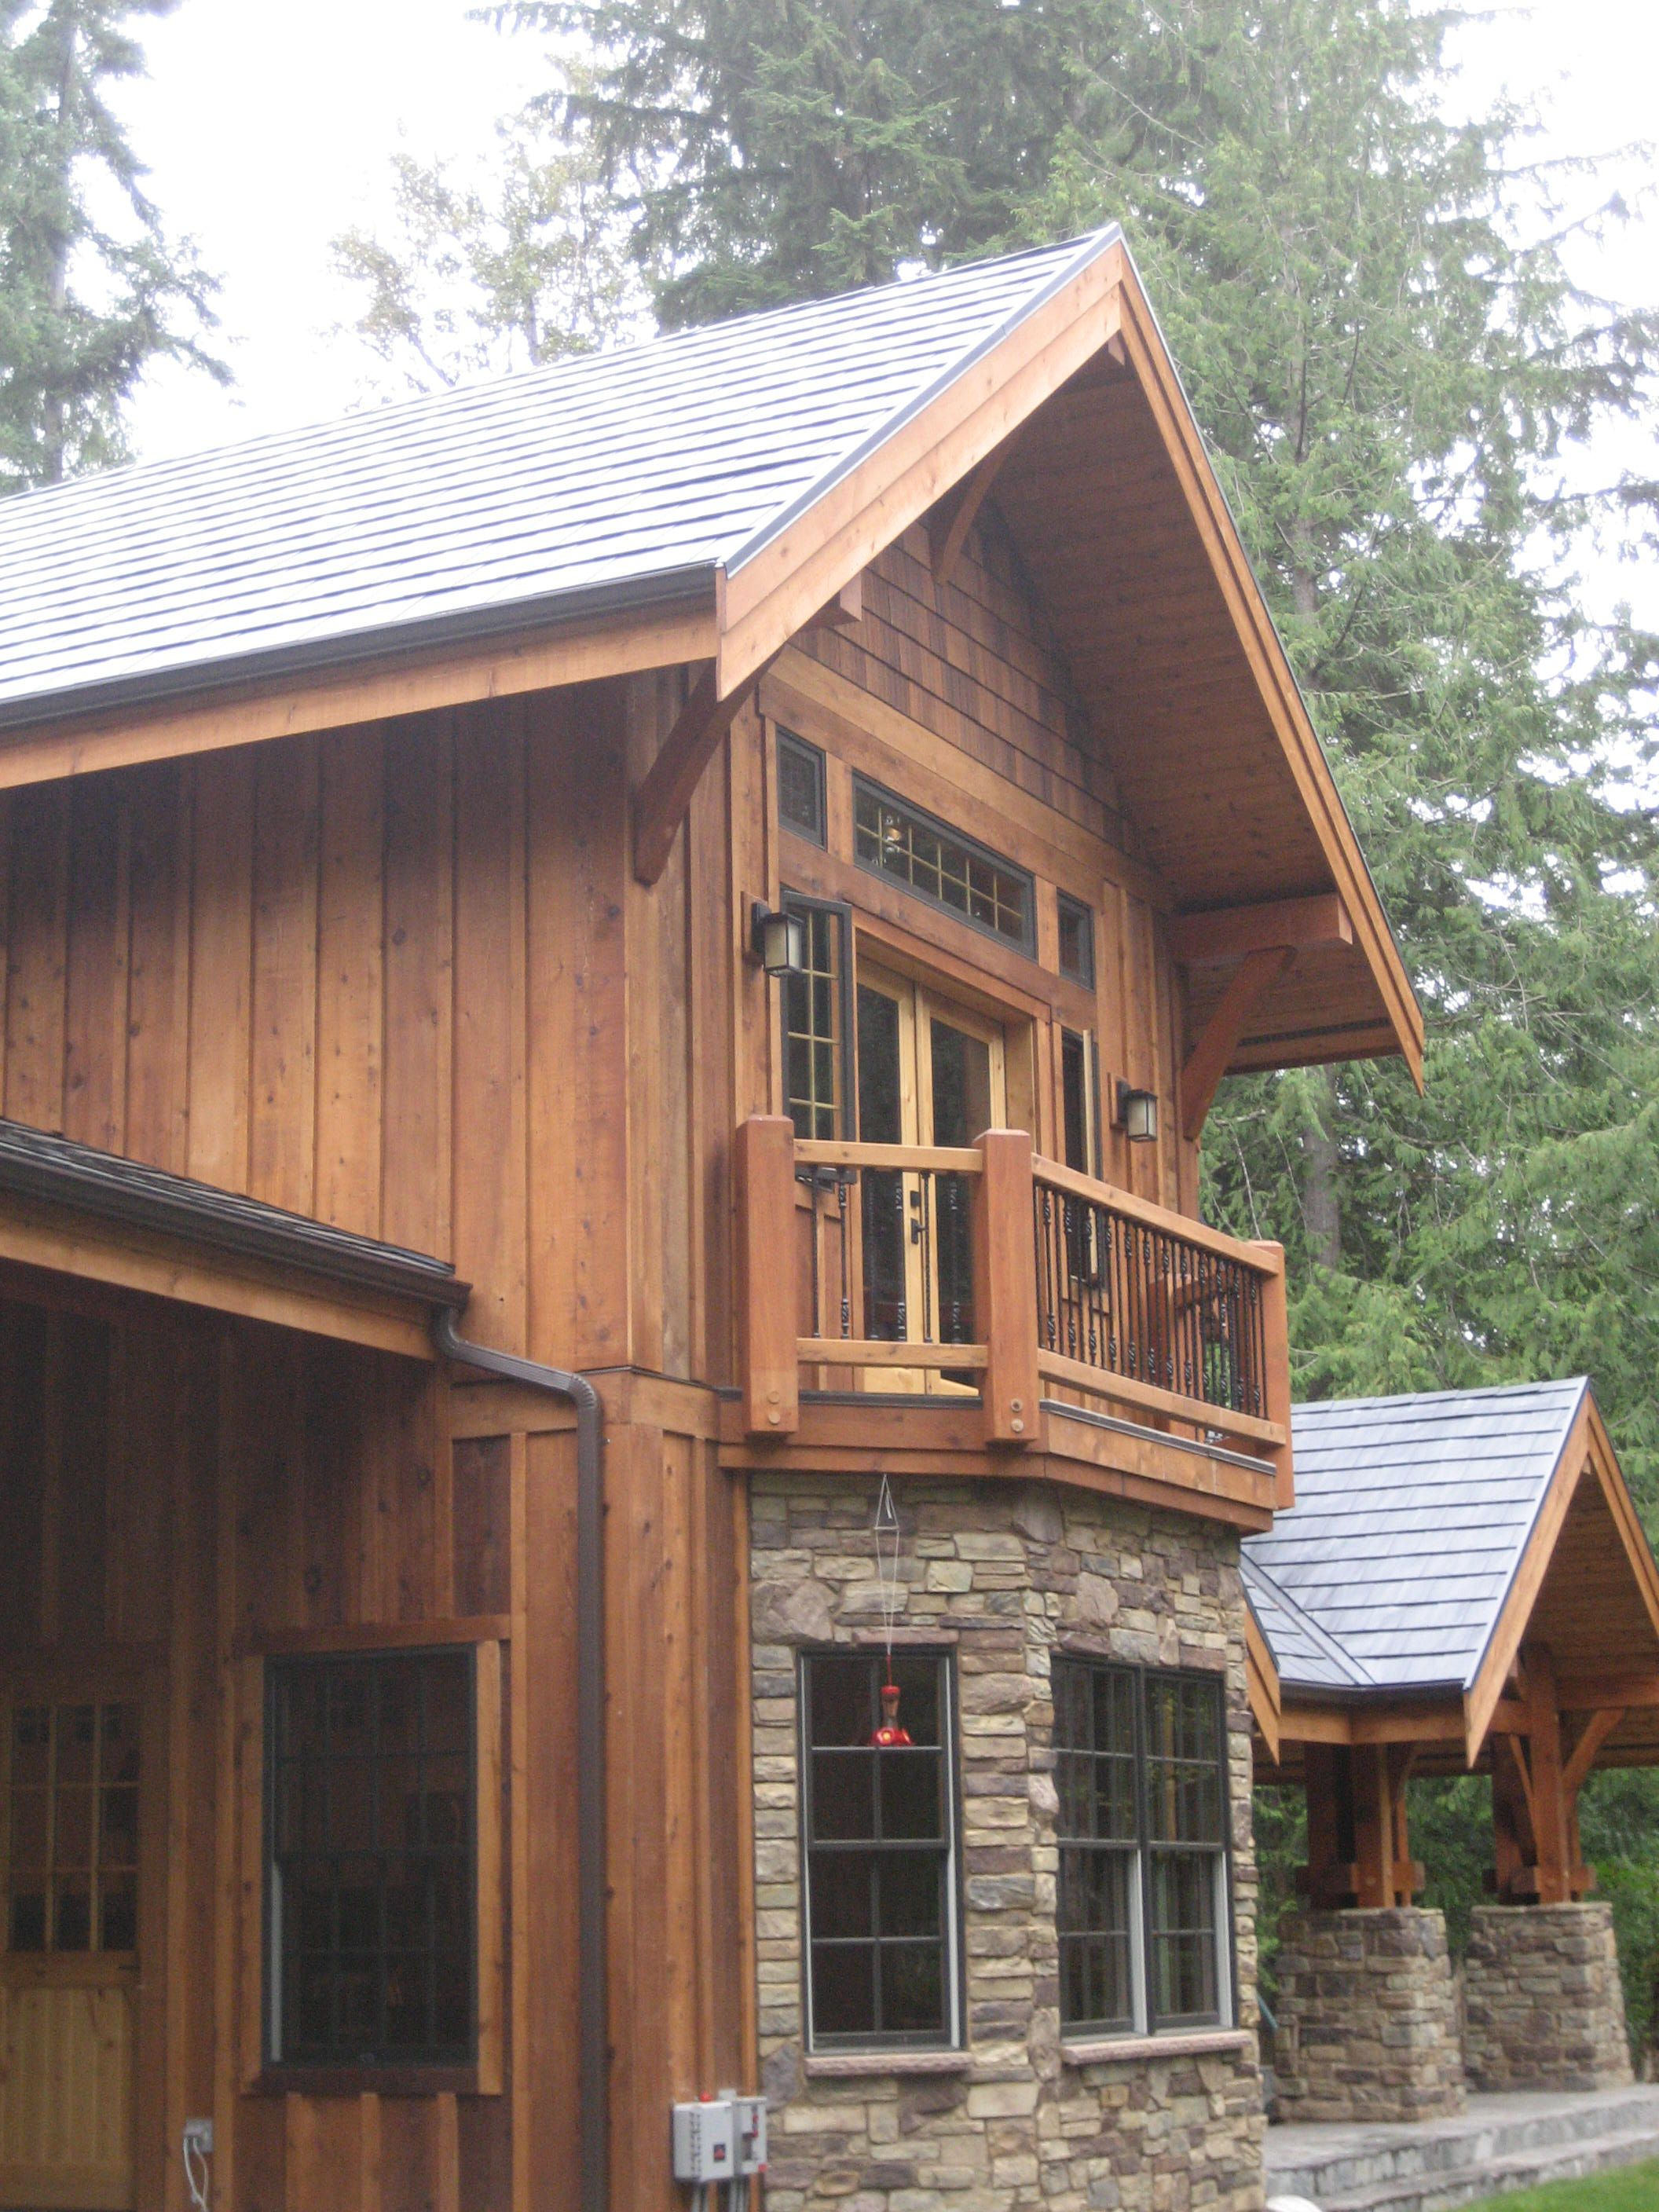 Pictures of Board and Batten Siding On Log Homes